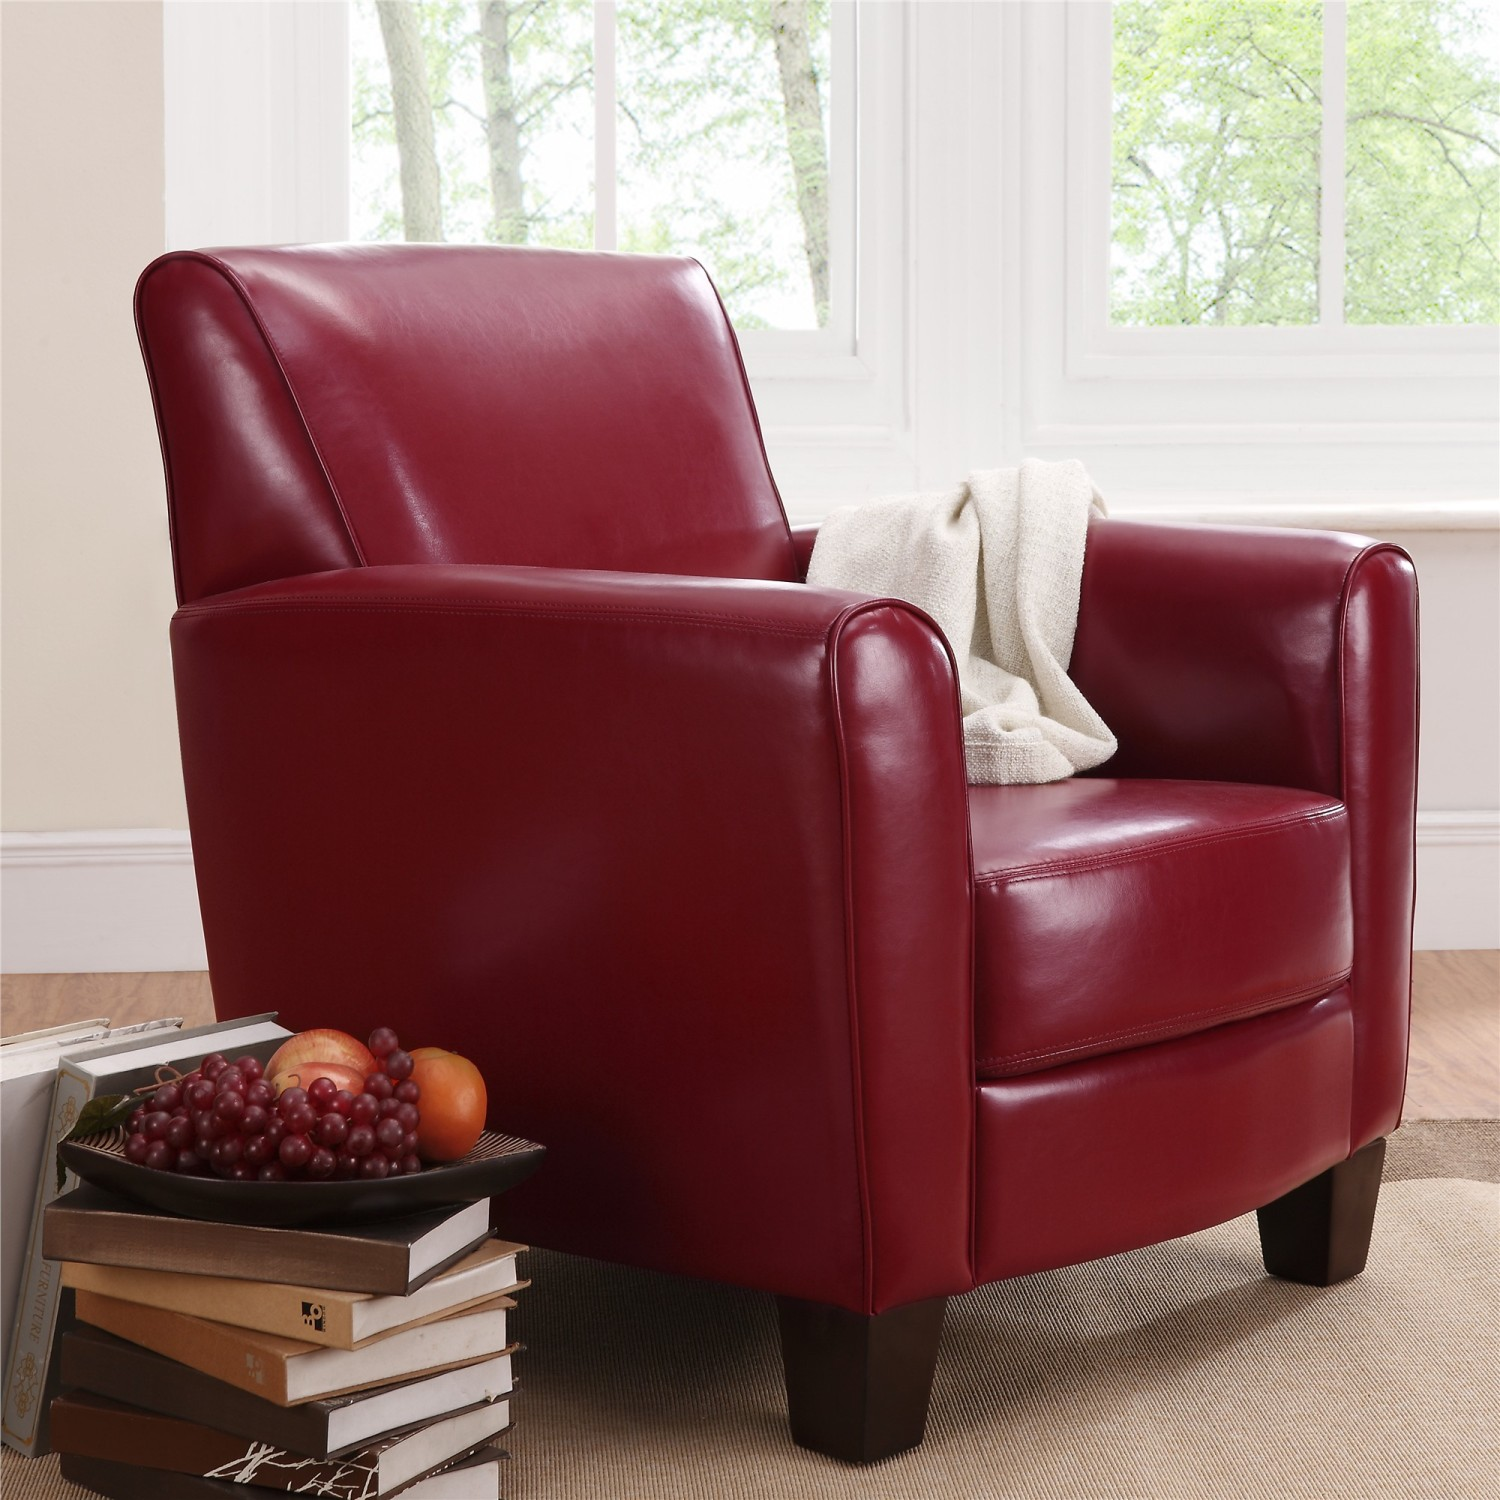 Leather chair sale what to expect and what to know 8 Leather